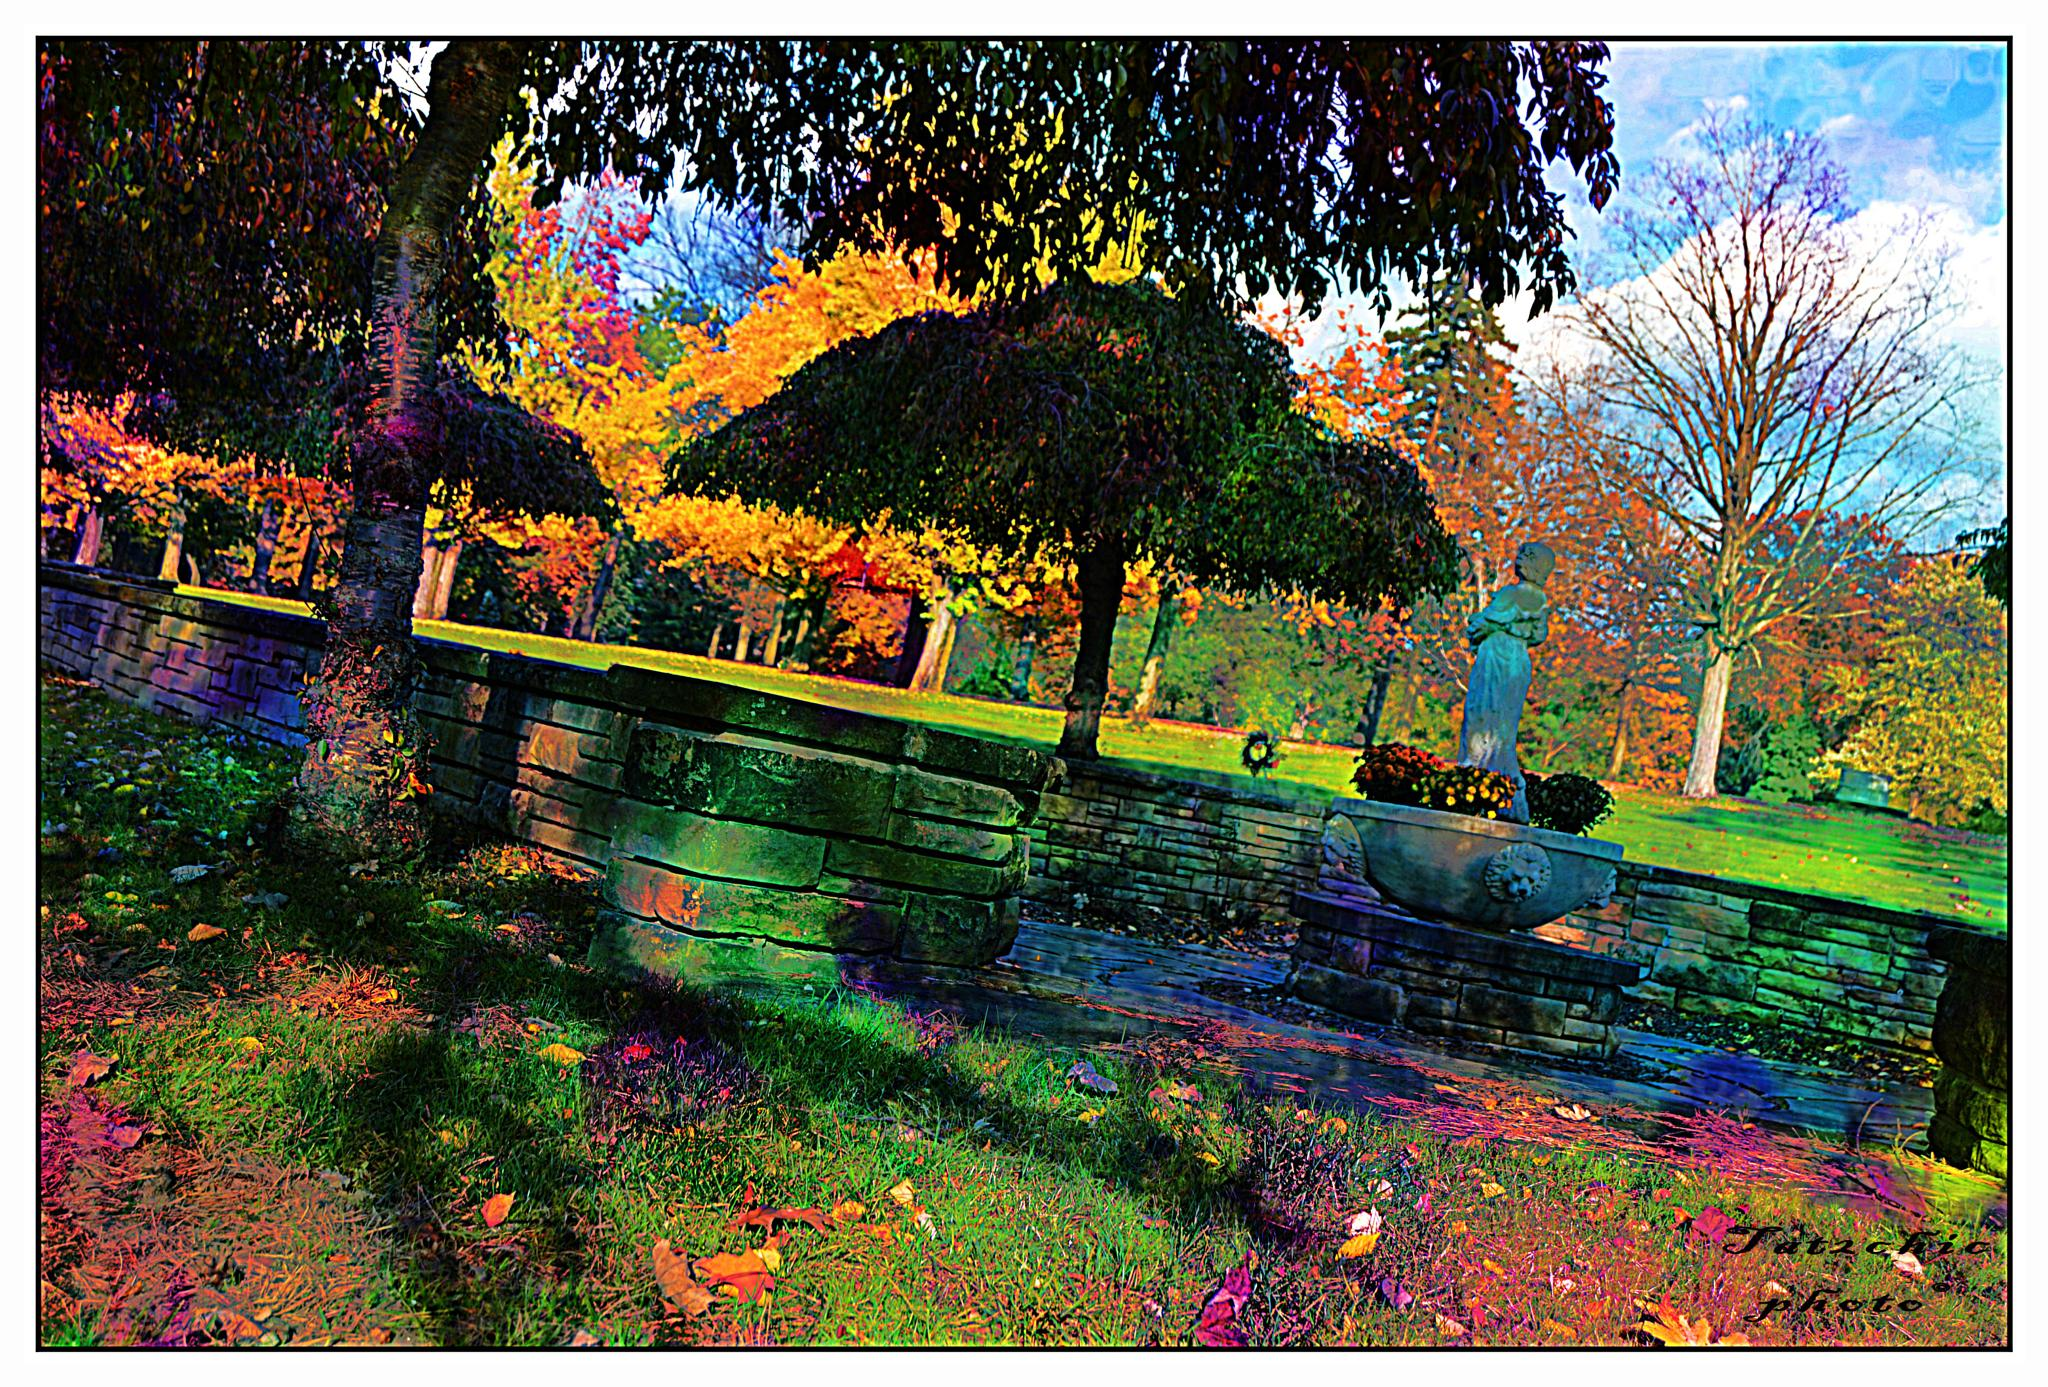 A colorful garden by candy.holenchick